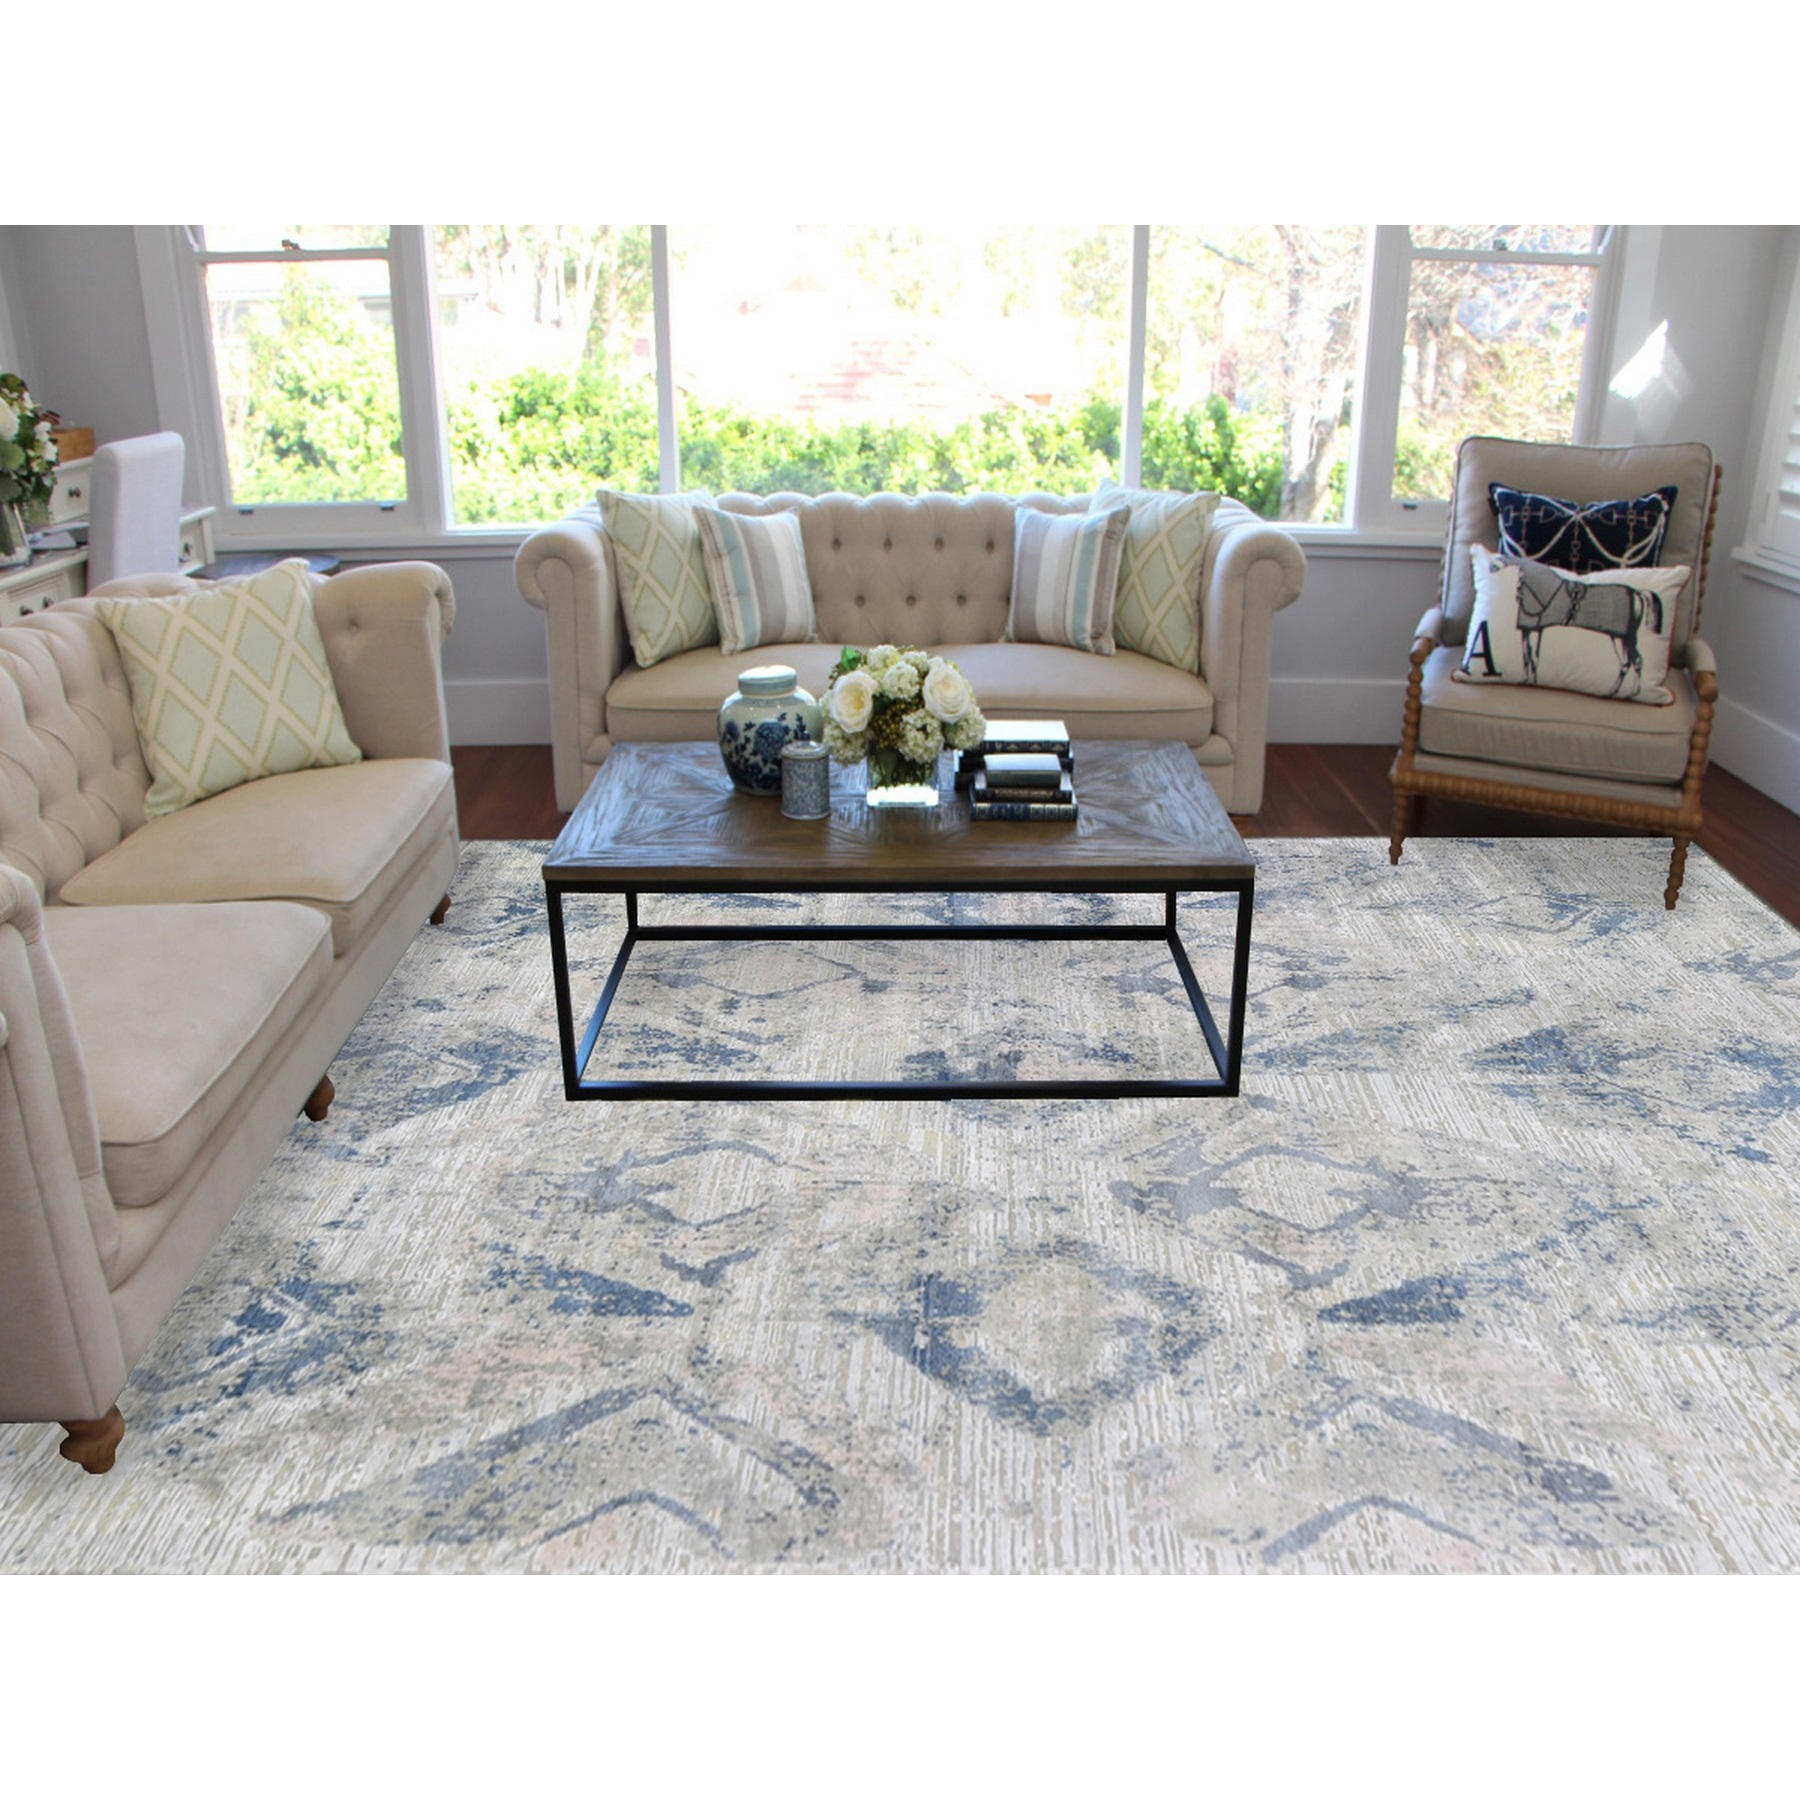 "8'10""x12'1"" Ivory Large Elements with Pastels Silk With Textured Wool Modern Rug"